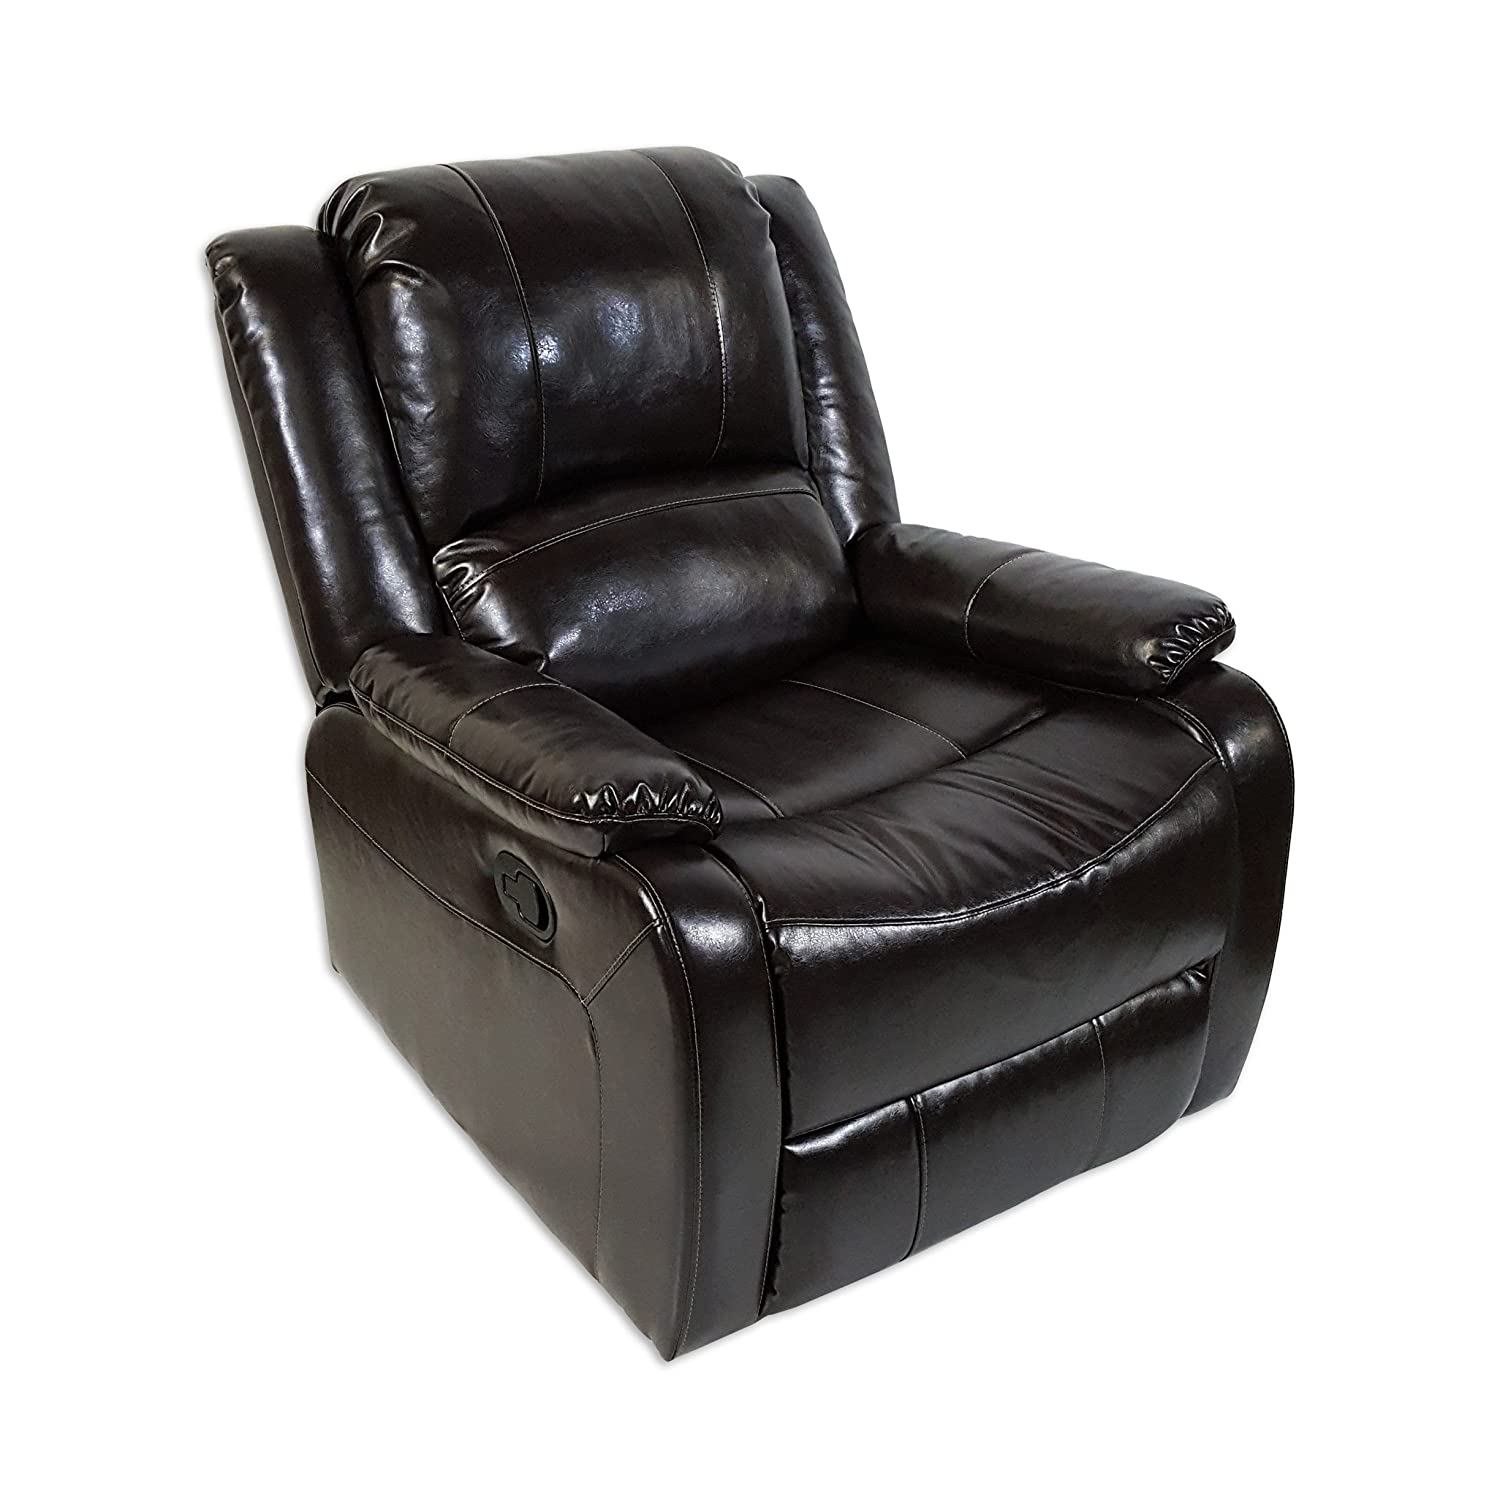 "Amazon RecPro Charles 30"" RV SGR Swivel Glider Recliner Chair"